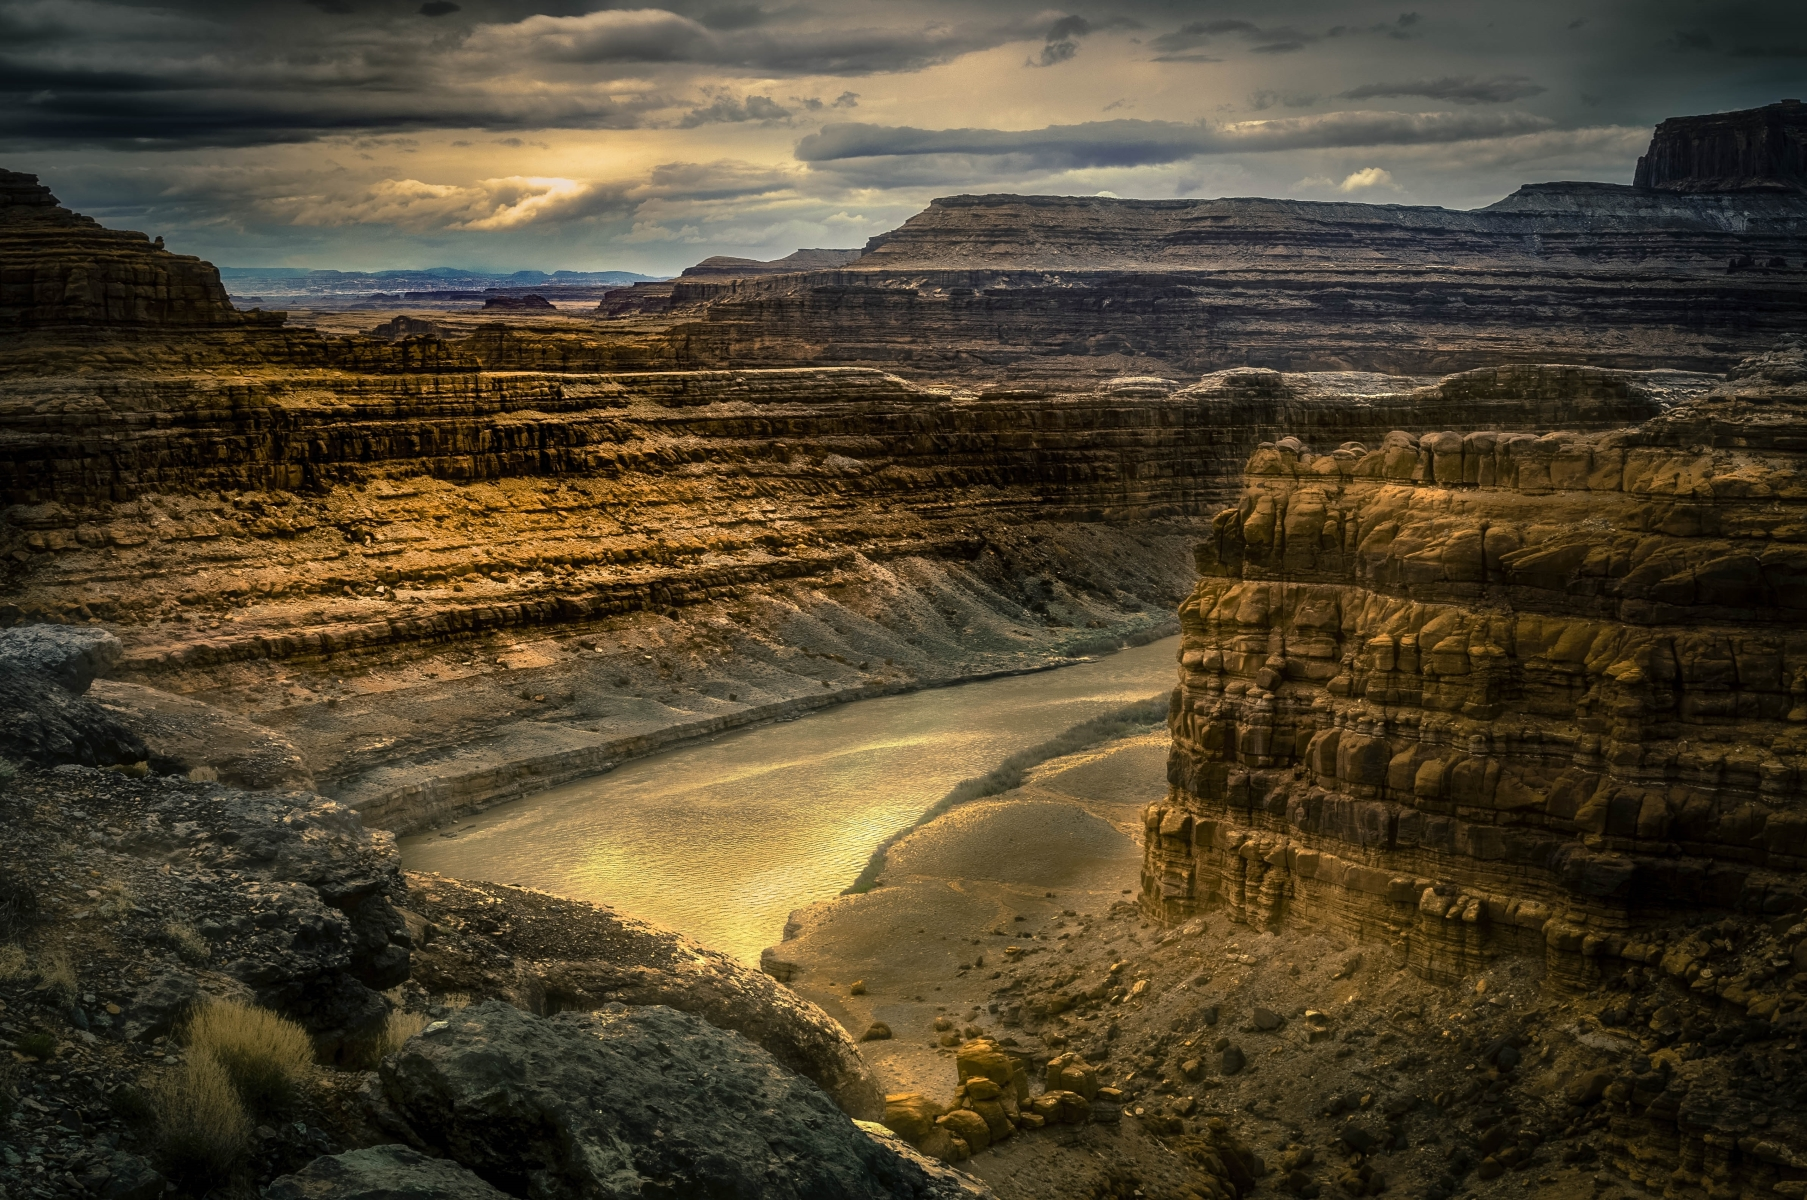 'Colorado River, Utah' (PA 1 Place) by Eric Gold - LS